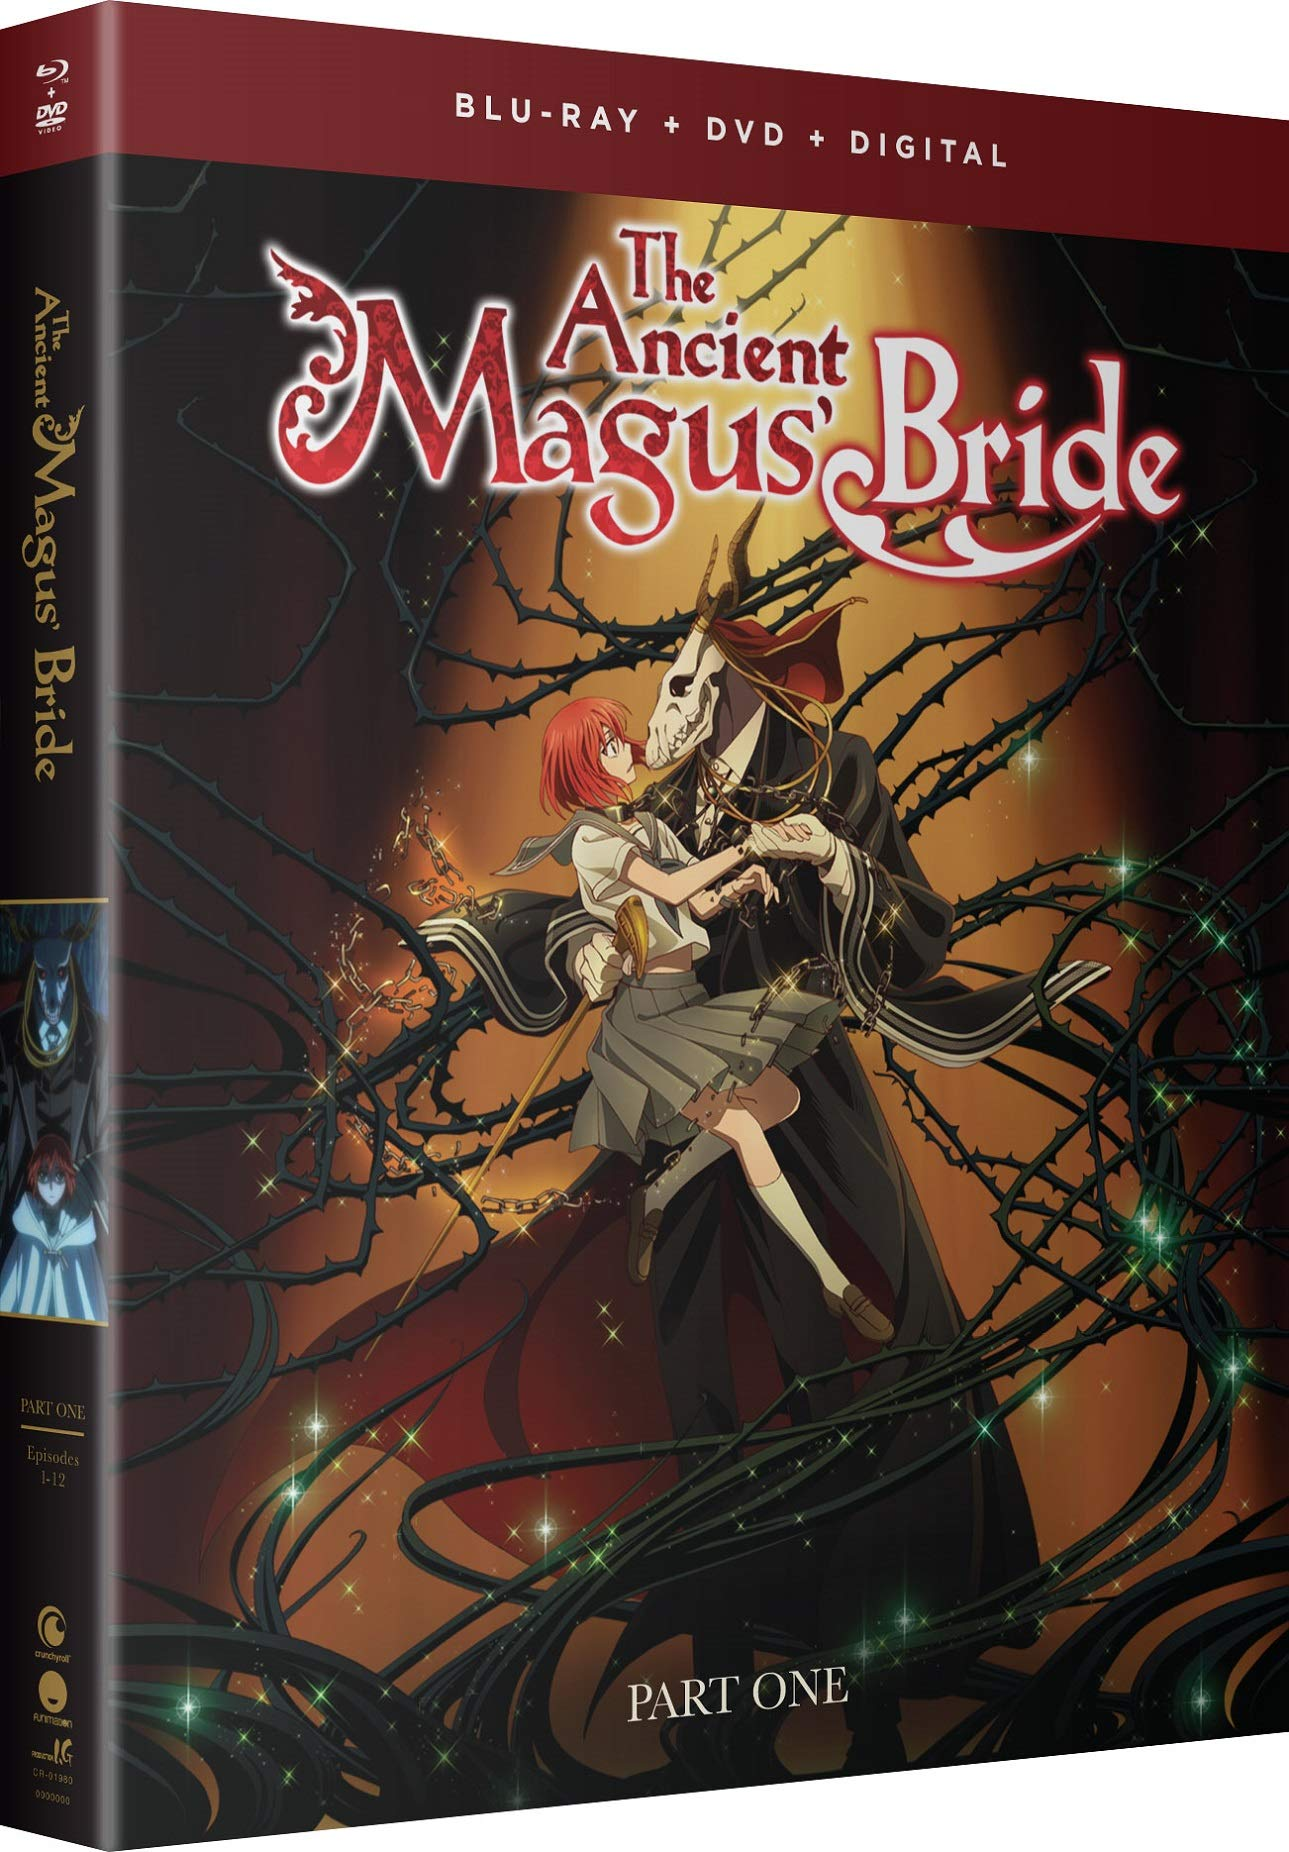 Blu-ray : The Ancient Magus Bride: The Complete Series - Part One (With DVD, Boxed Set, Digital Copy, Subtitled)